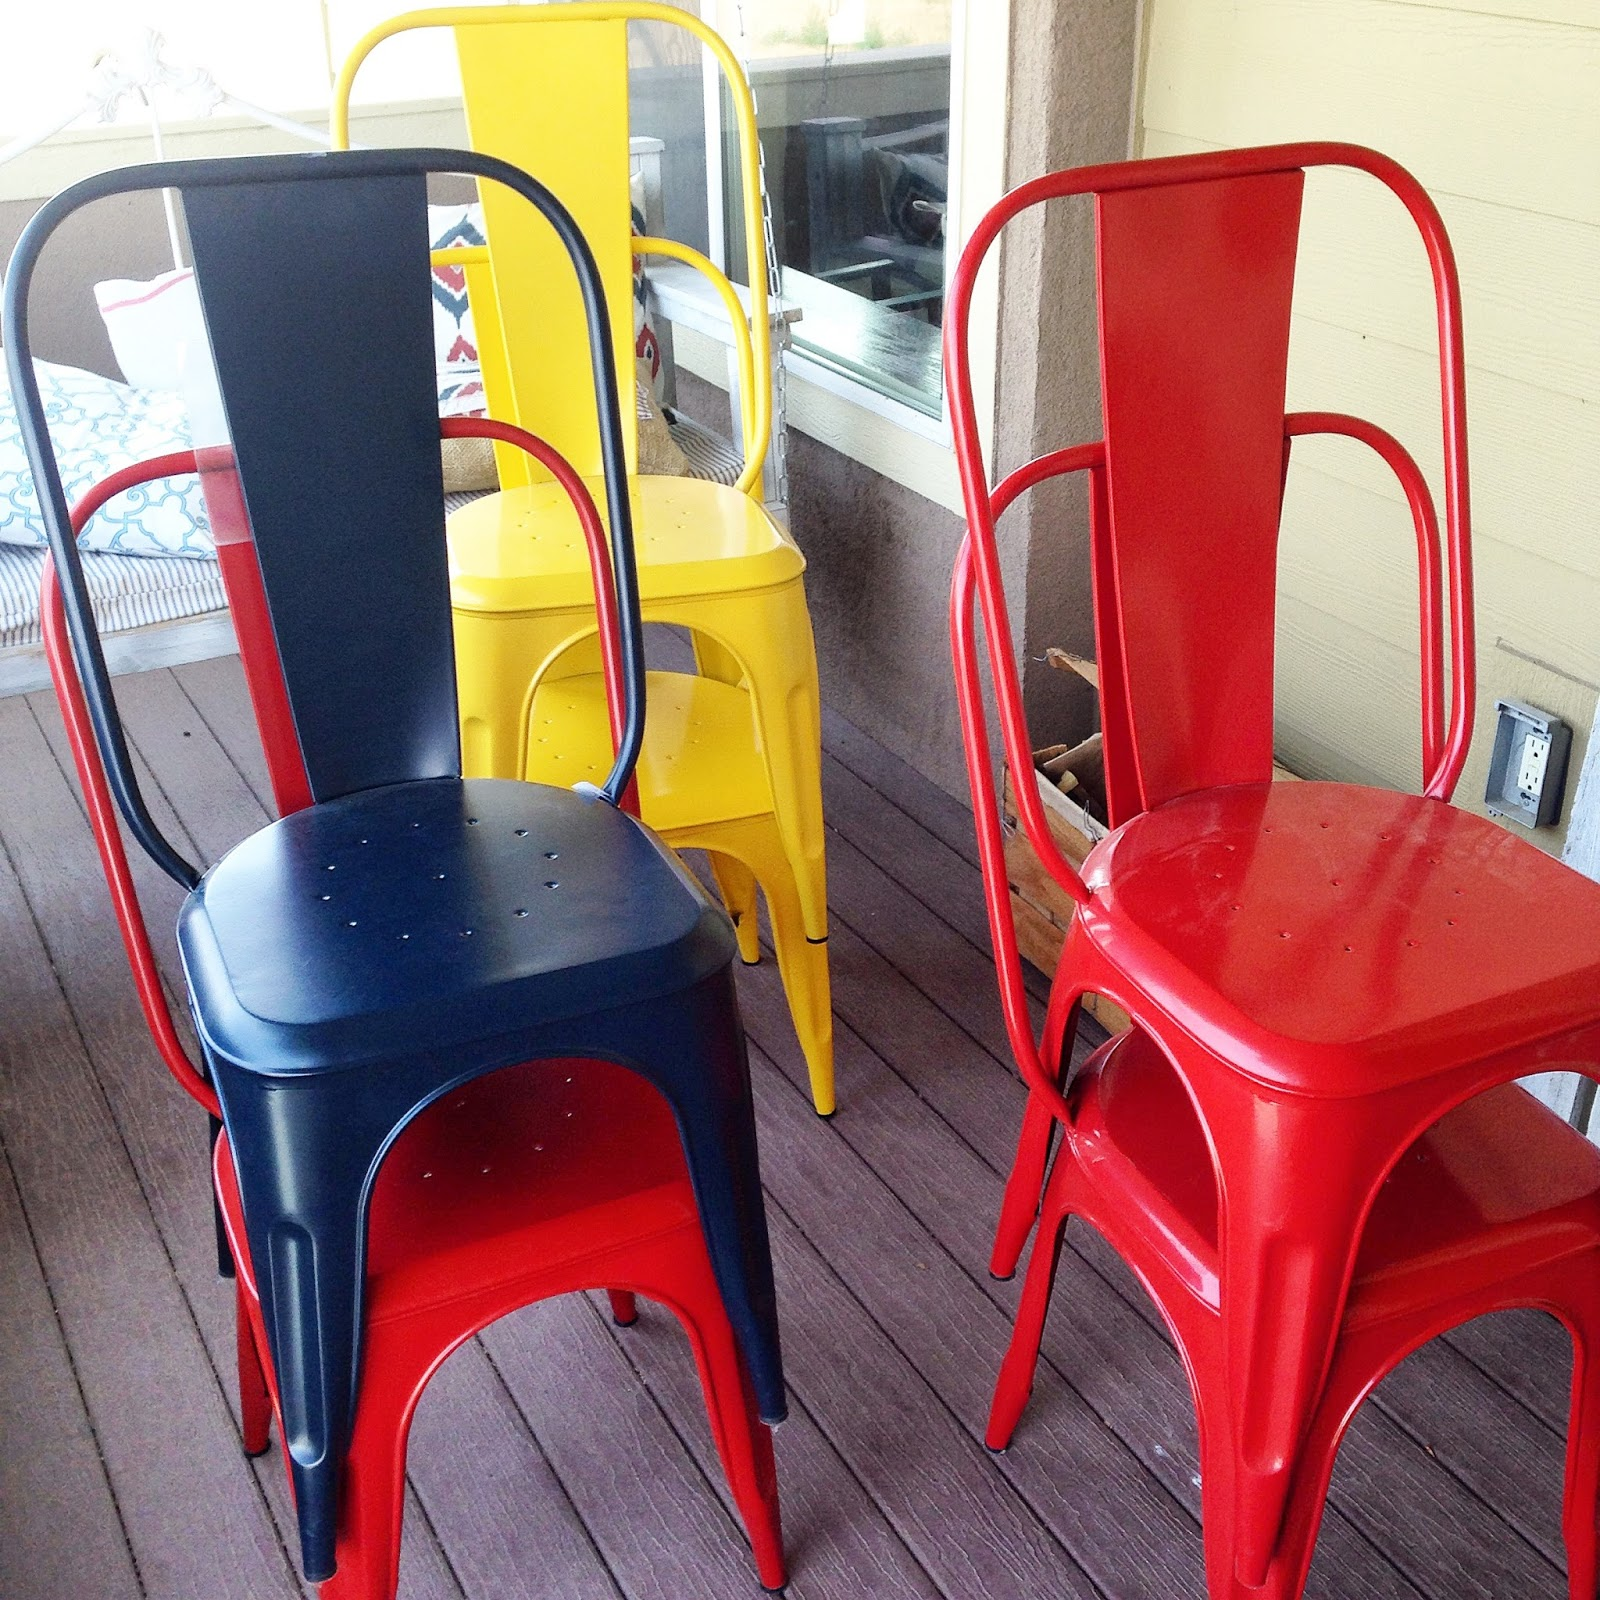 Red Metal Chairs Target Chair Cover Hire East Yorkshire New World Market Dining Averie Lane